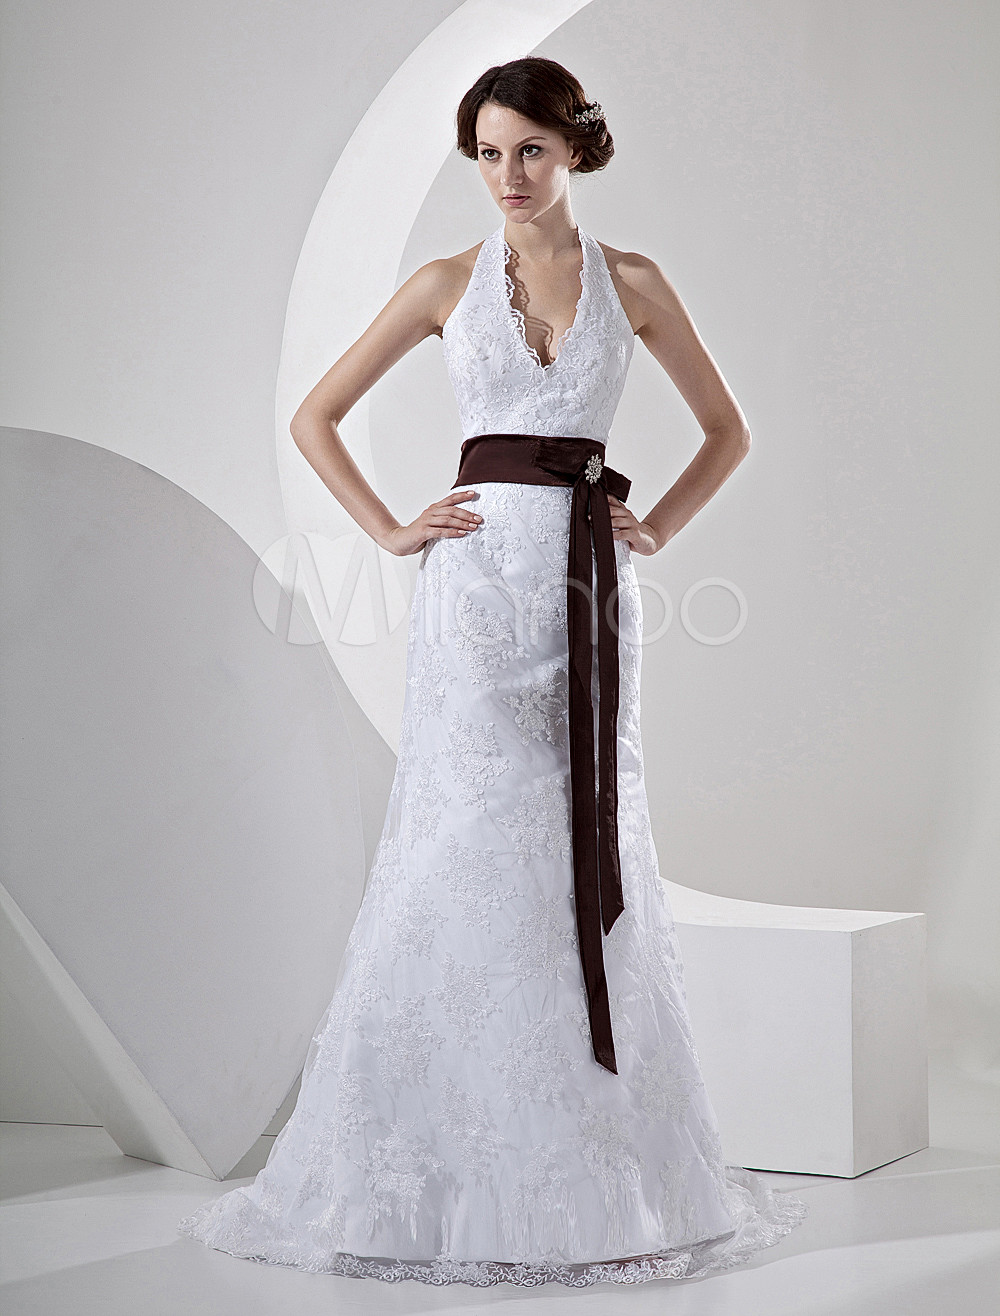 mermaid v neck sweep white lace satin sash rhinestone bridal gown